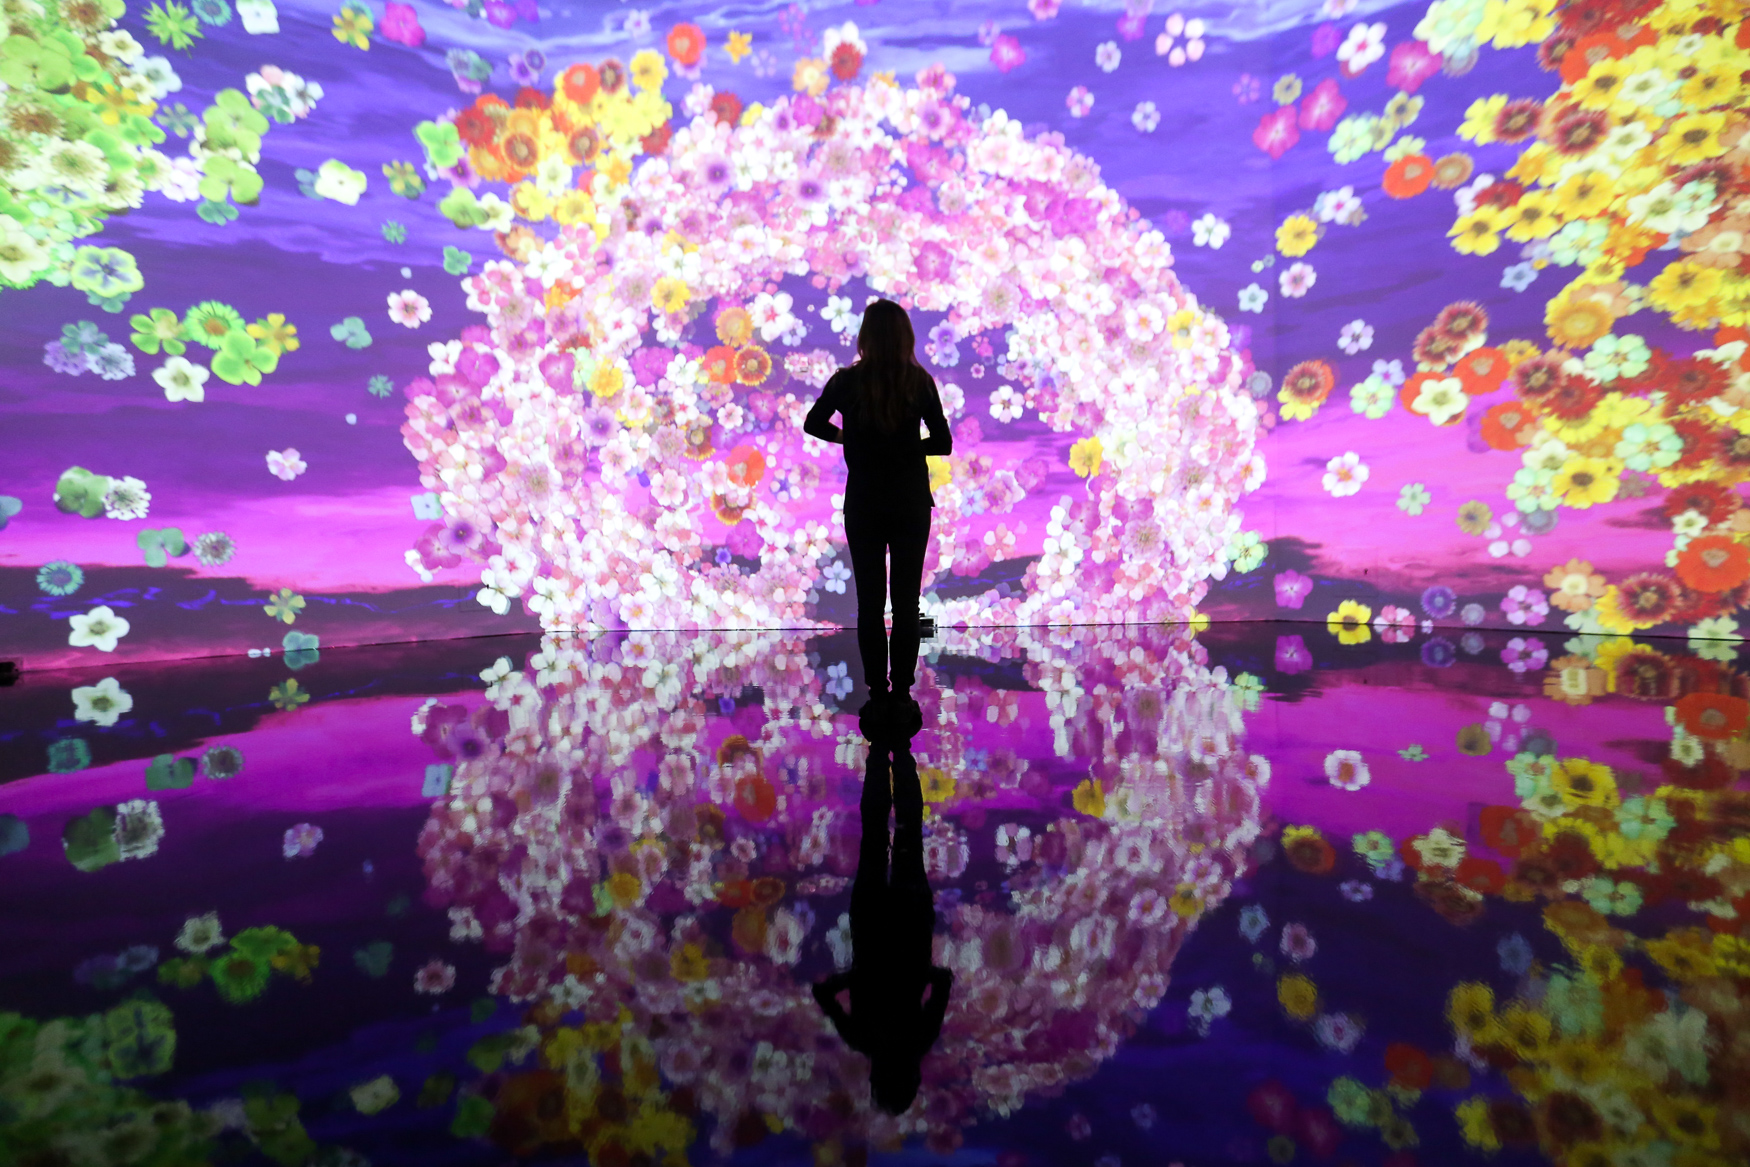 Artechouse's spring exhibition 'In Peak Bloom' opens March 20 - just in time for the actual cherry blossoms. The new augmented reality exhibitions include an atrium full of responsive, projected blooms, plants that respond to your body's electrical currents, a Japanese fable told in virtual reality and, of course, cocktails. Every piece of art in this exhibition was made by women or women-led teams, including an installation from Design Foundry, a local group. Like the cherry blossoms, the exhibit won't last long - it'll be over by May 27. Adult tickets are $16, which you can by at{ }https://www.dc.artechouse.com/. (Amanda Andrade-Rhoades/DC Refined)